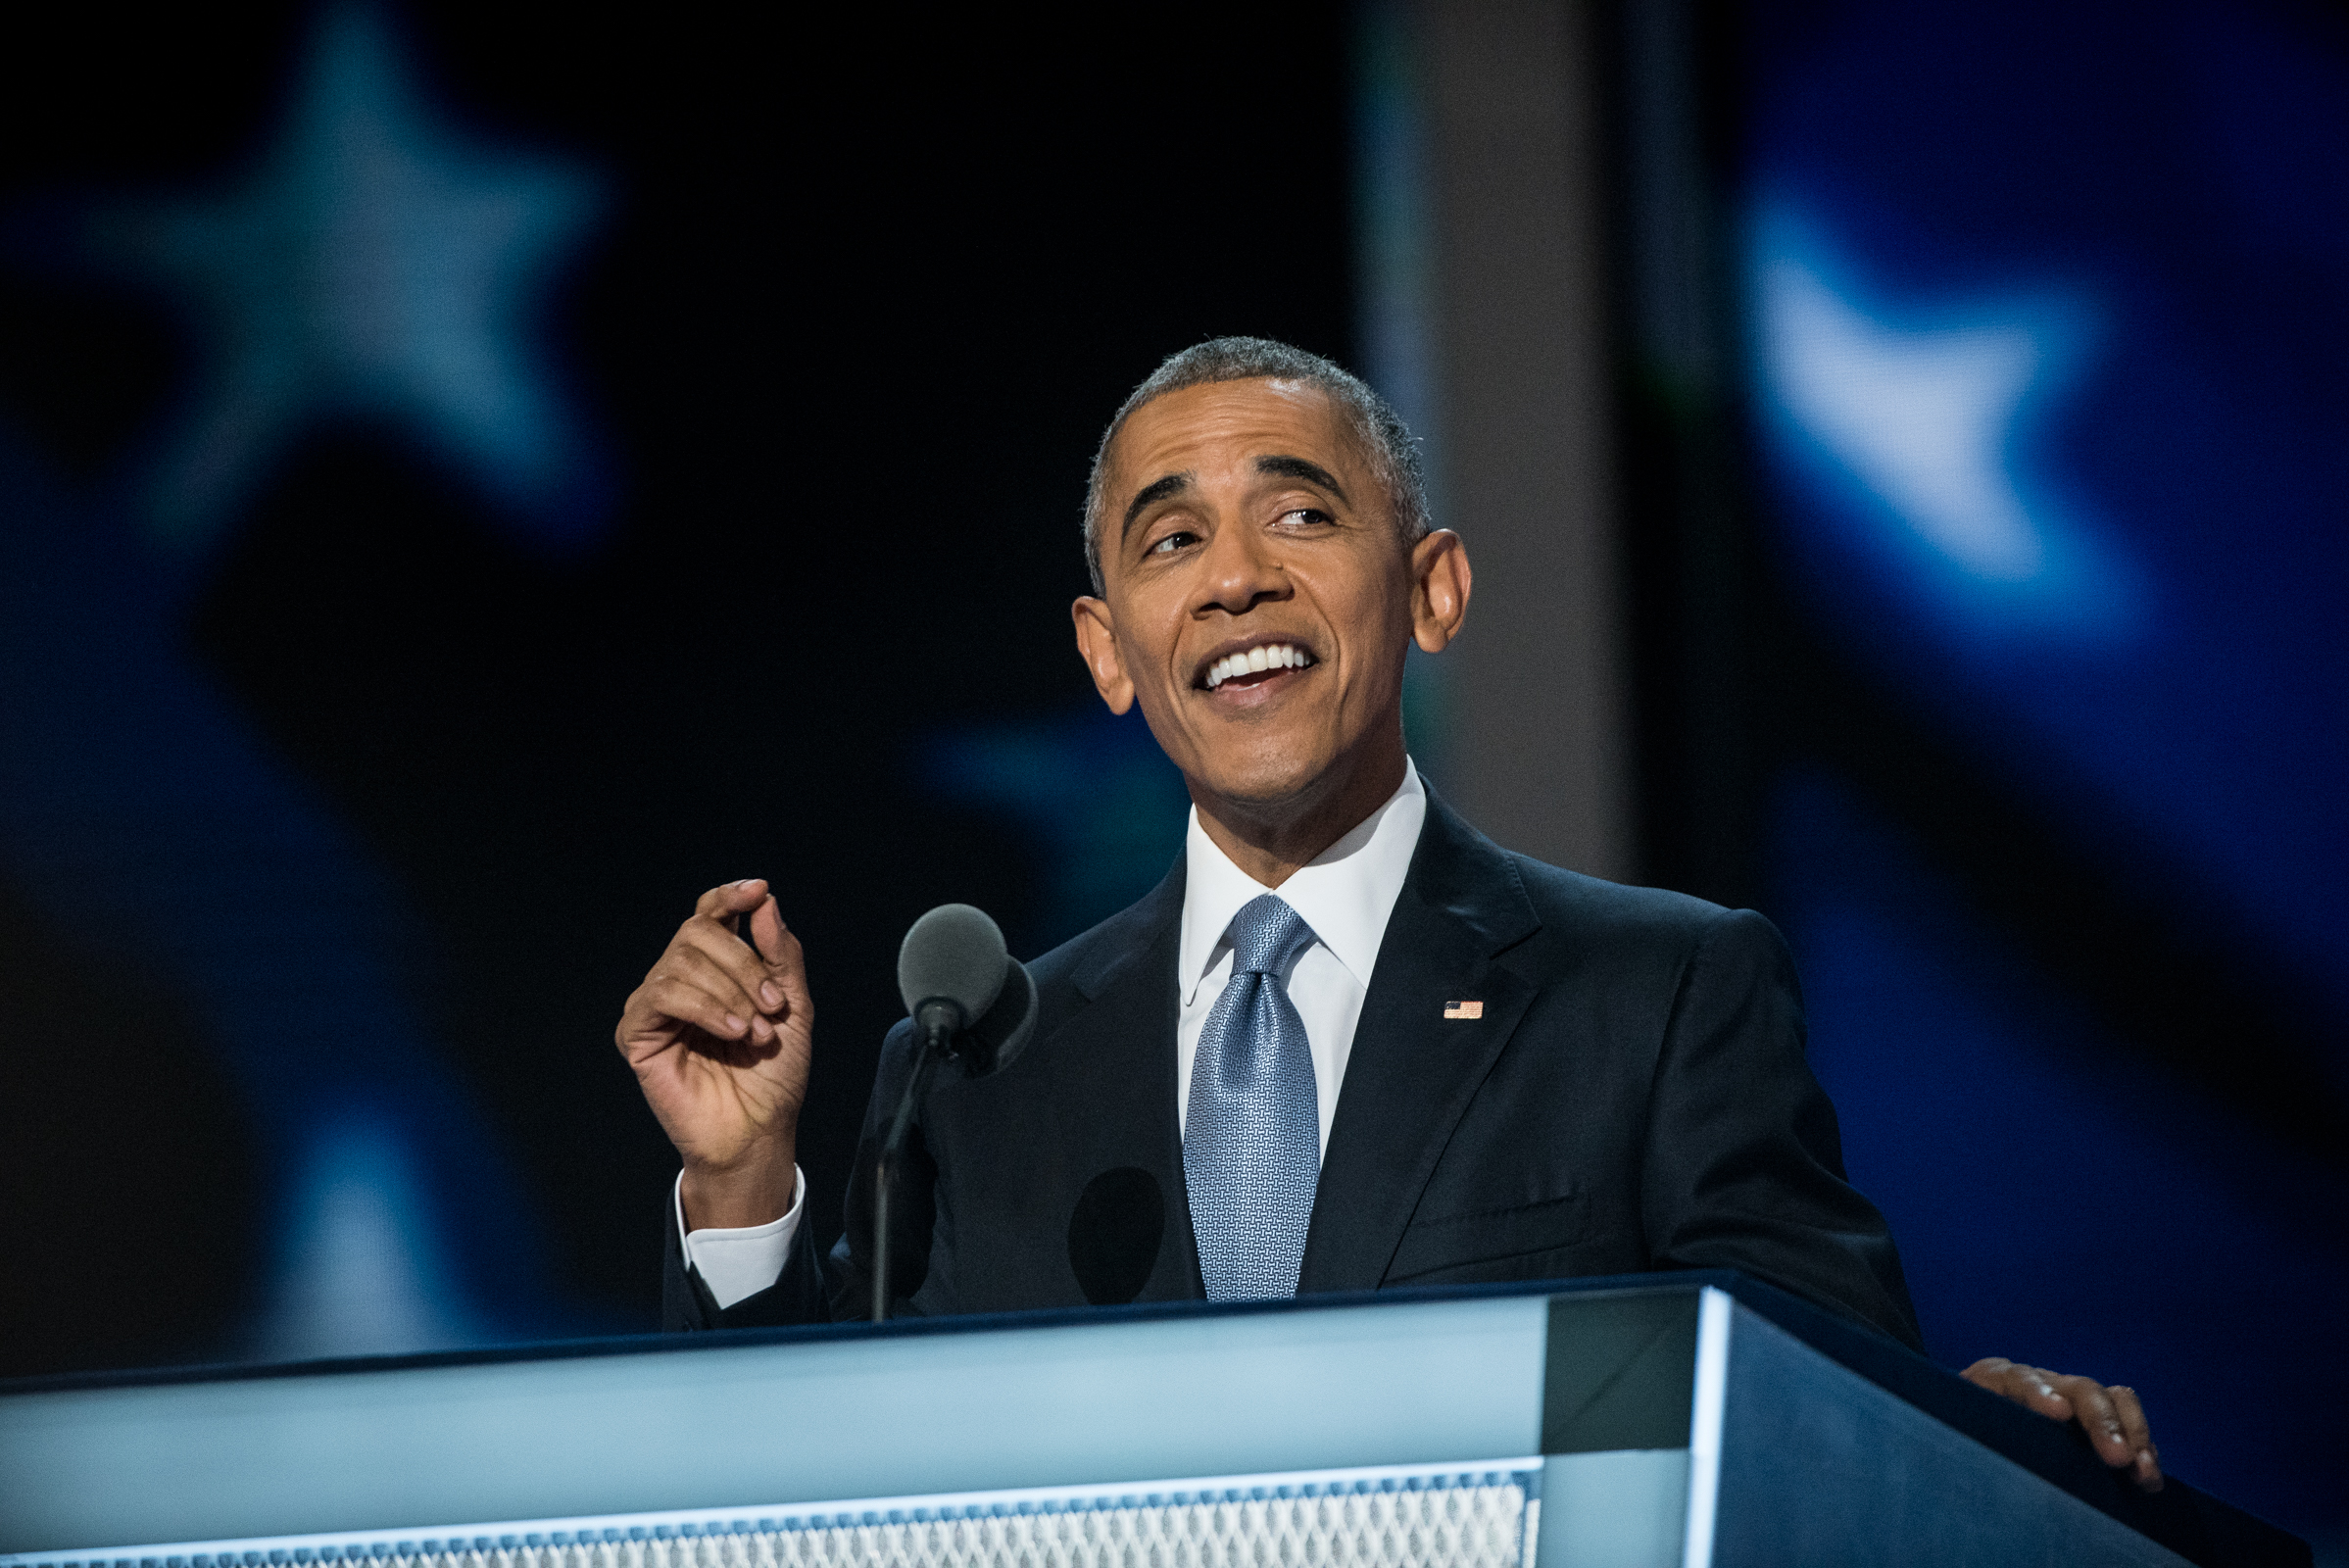 President Barack Obama addresses the delegates at the Democratic National Convention inside the Wells Fargo Center in Philadelphia on Wednesday July 27, 2016. (Michael Ares /Philadelphia Inquirer)